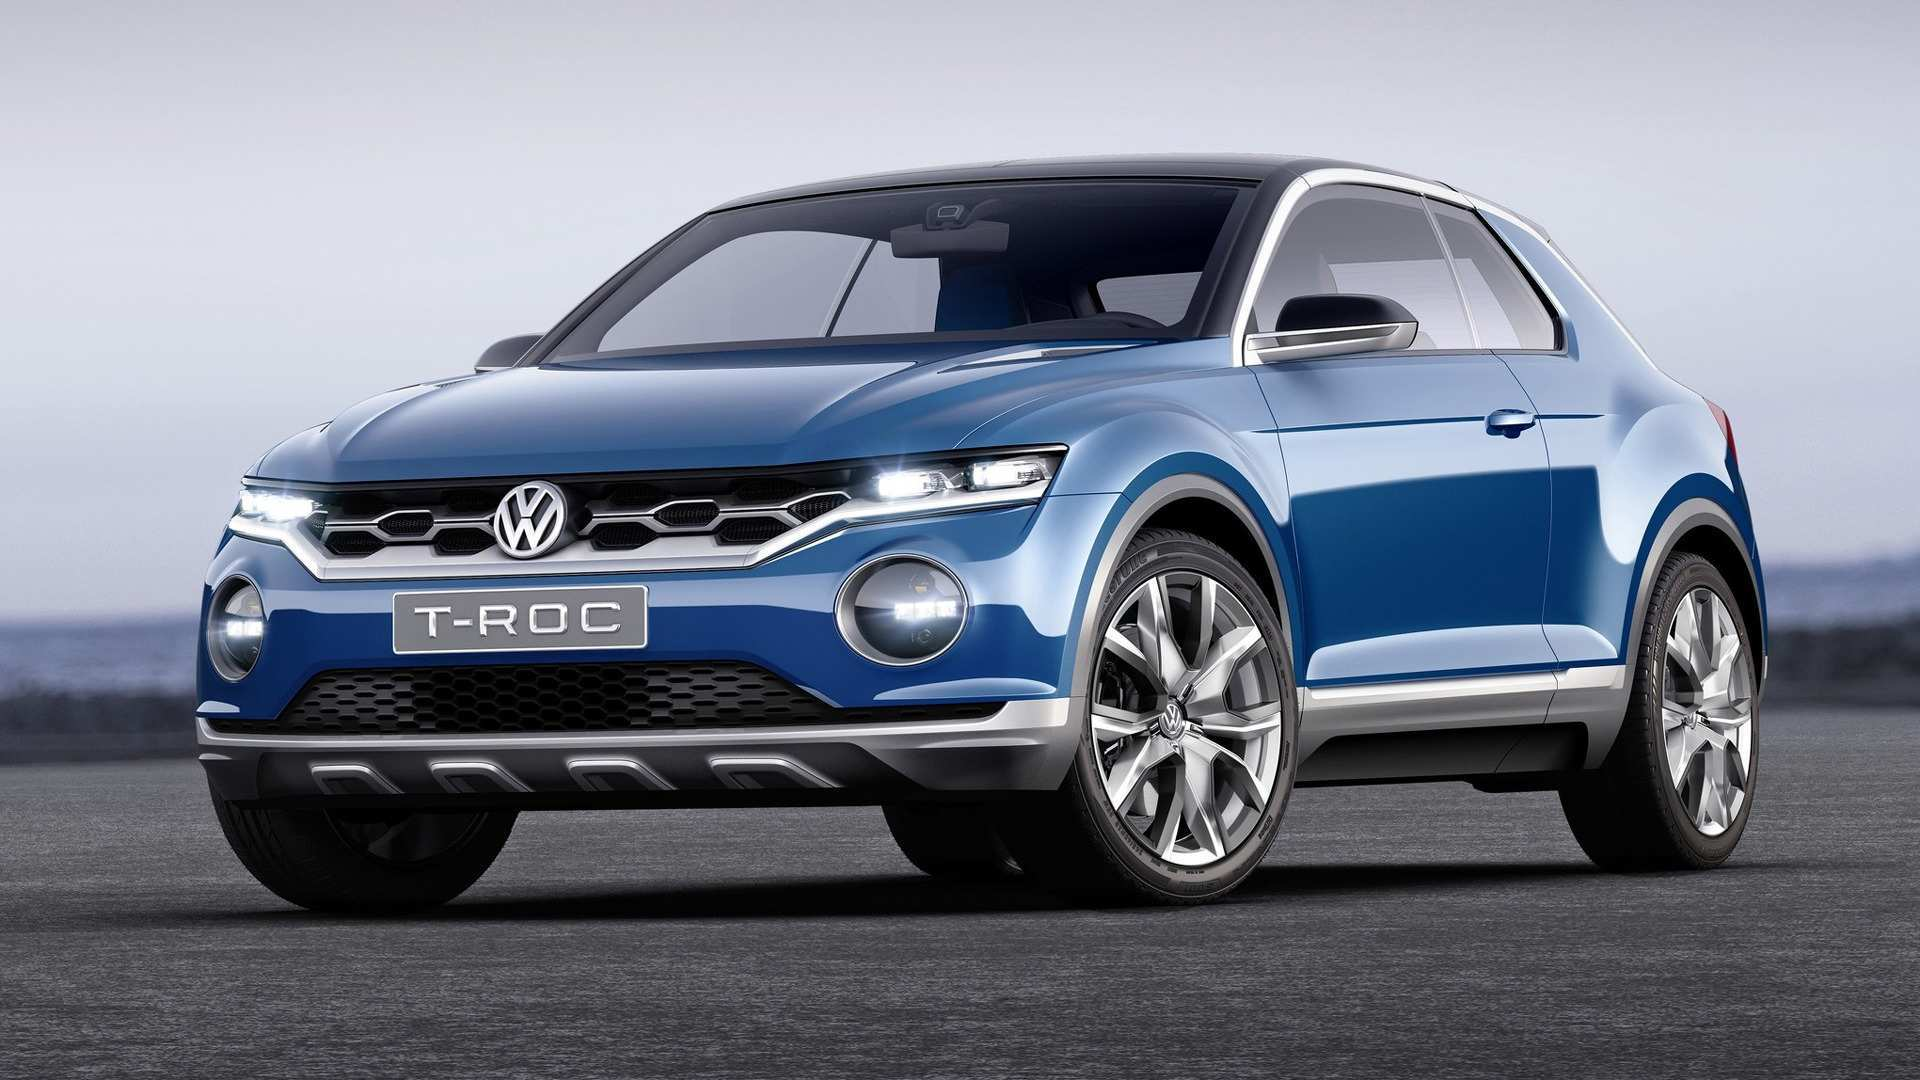 82 The 2019 Volkswagen T Roc Specs by 2019 Volkswagen T Roc